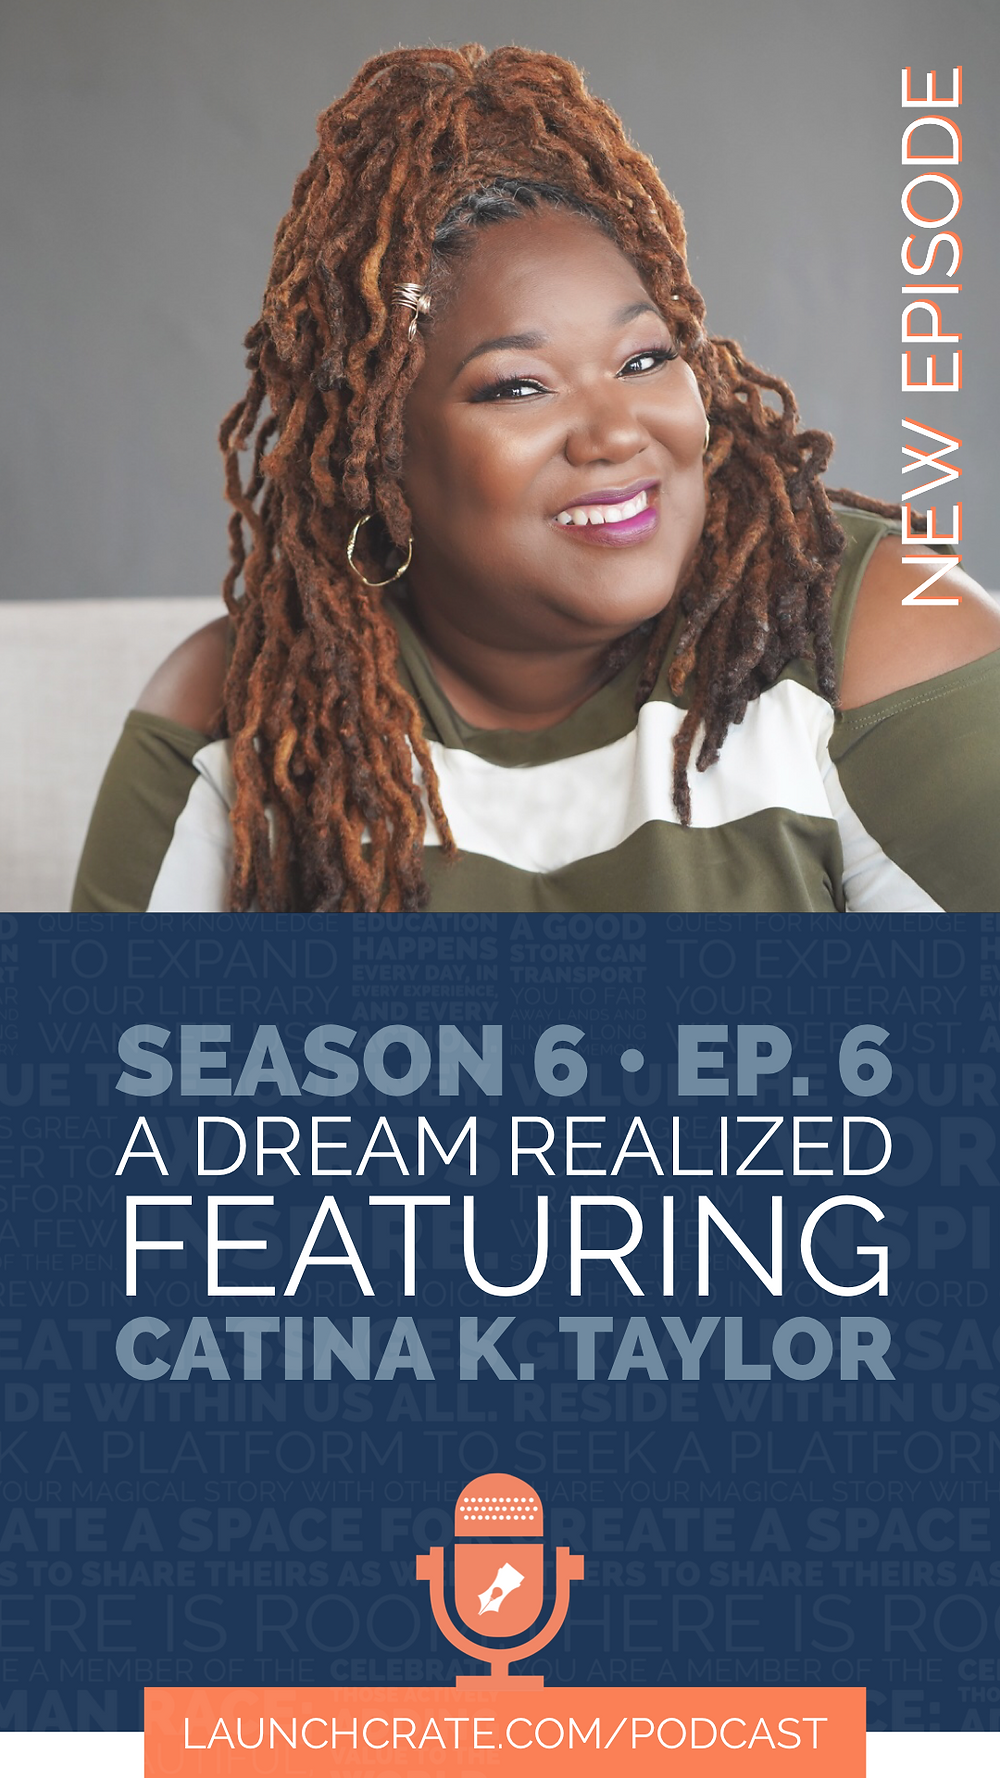 Podcast Season 6, Episode 6, with Catina K. Taylor